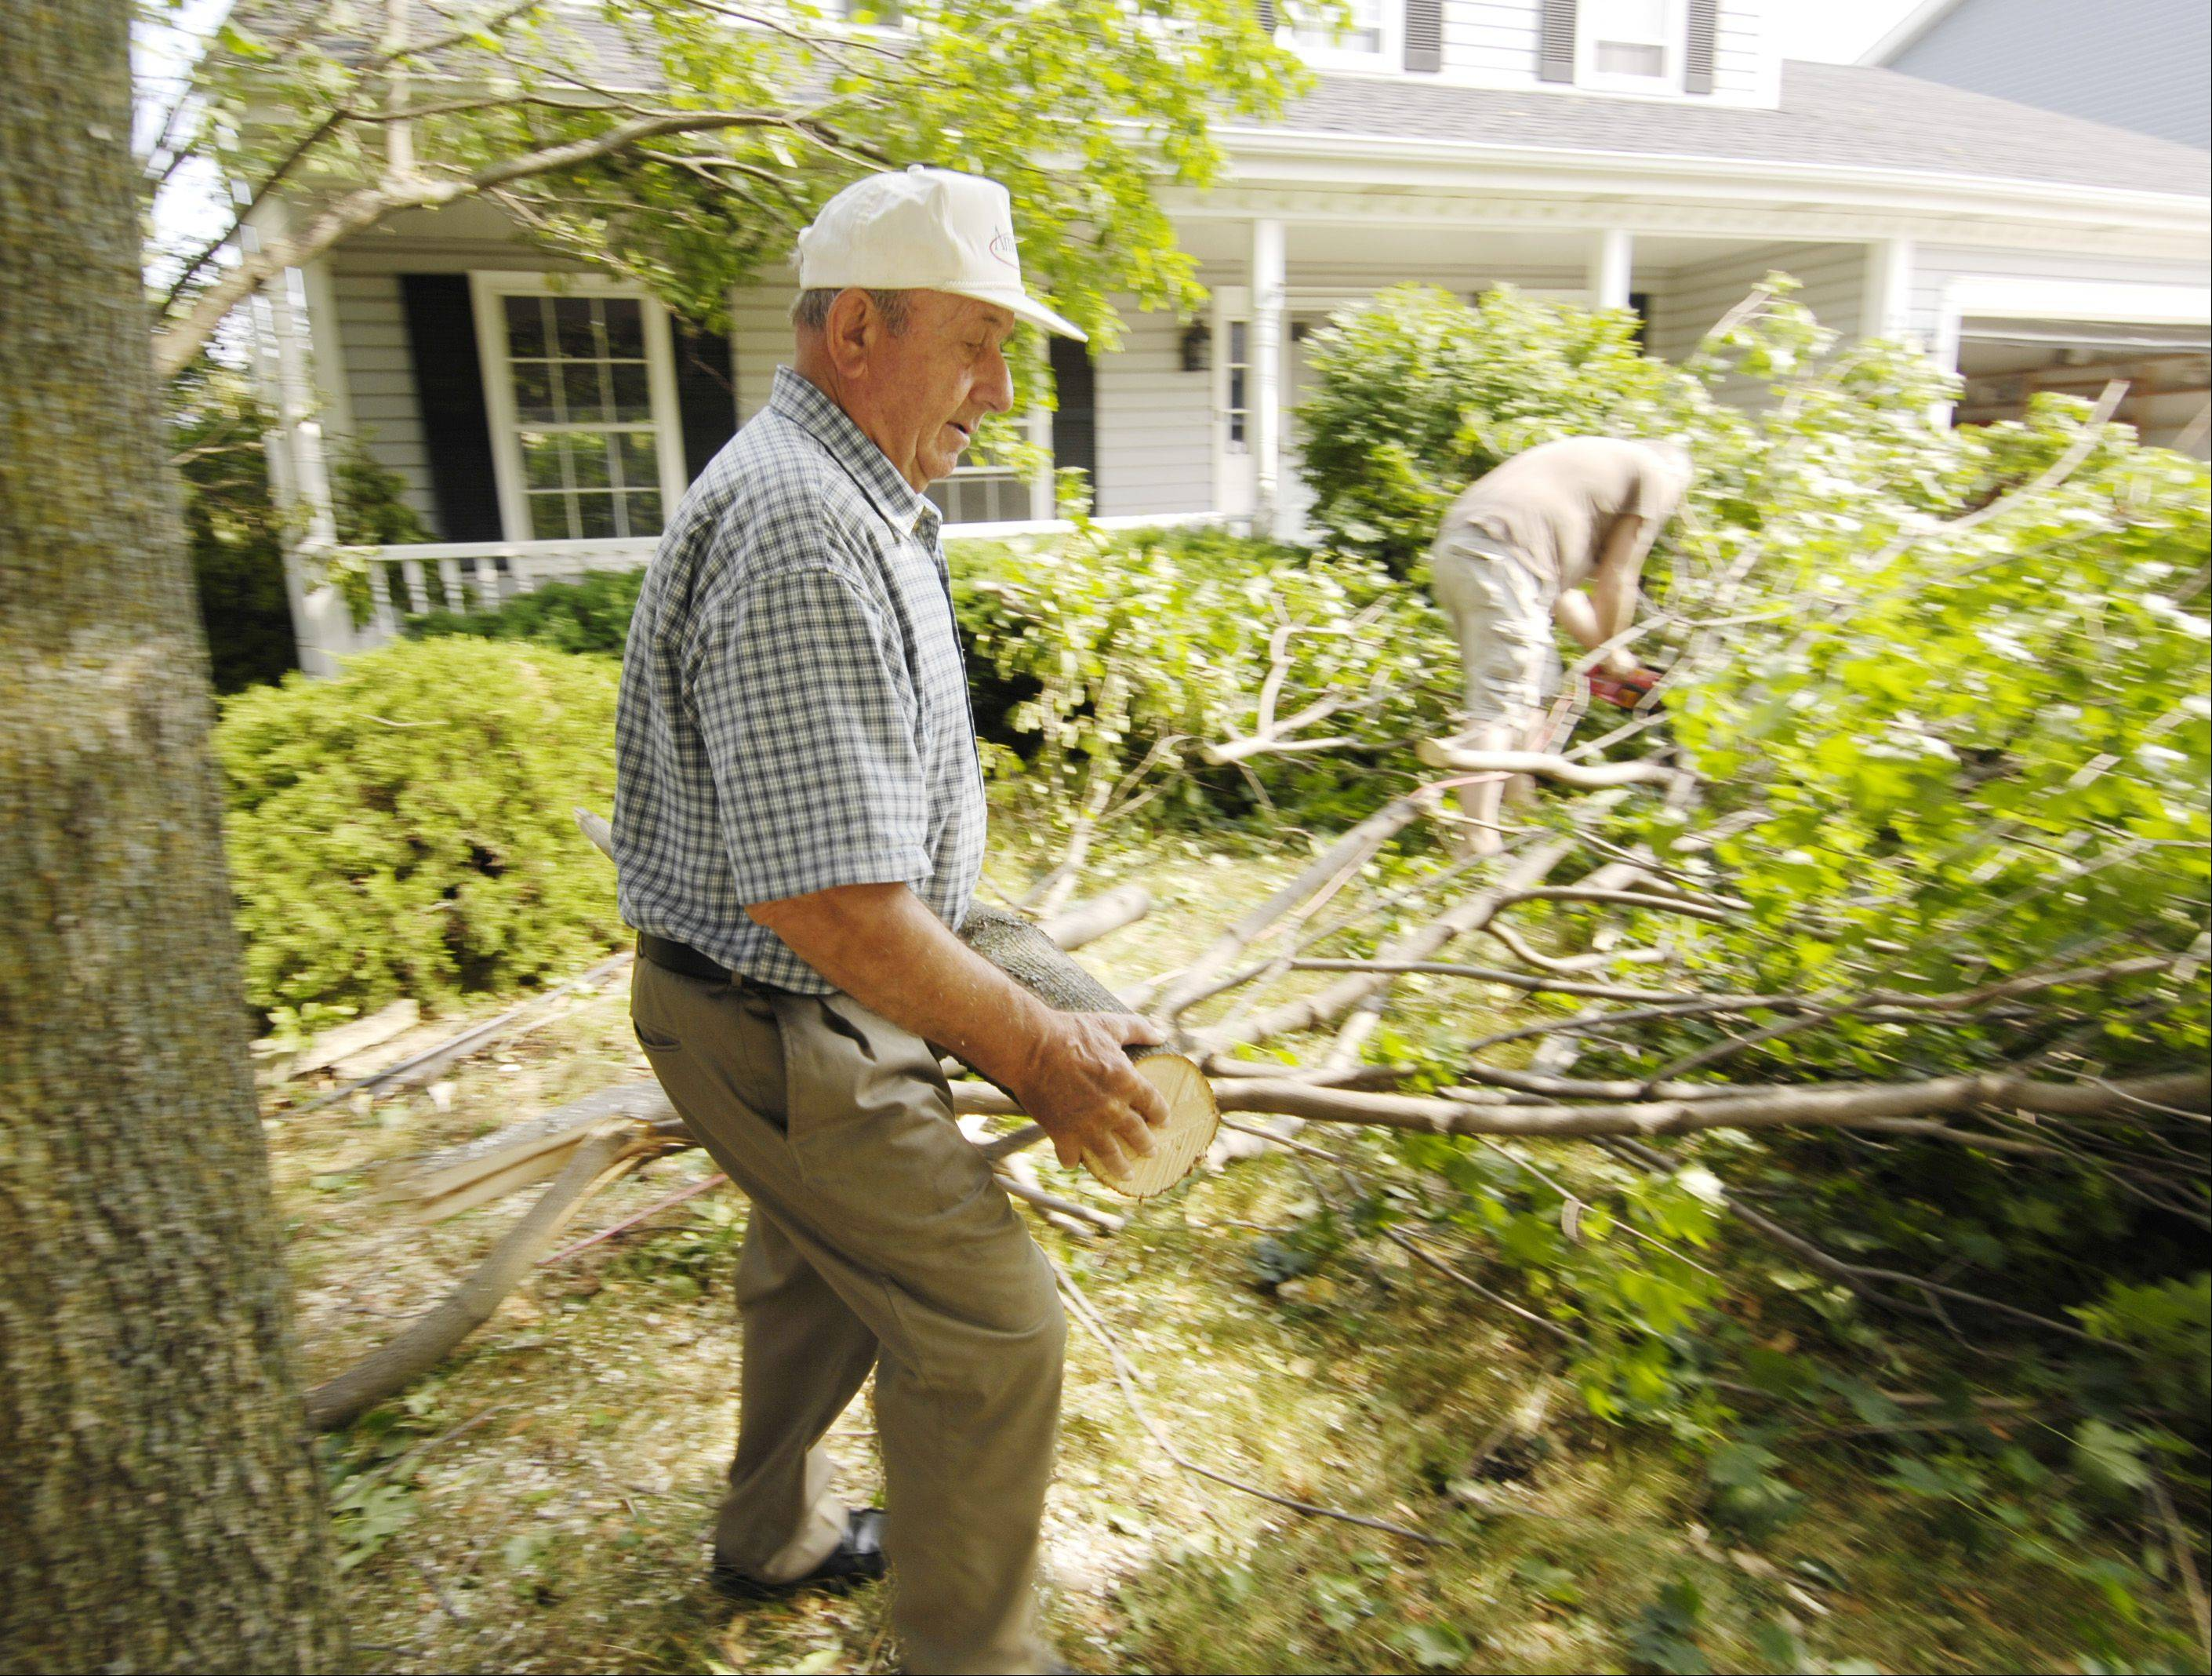 Mike Povkh and Ihor Kopytko clean up a yard in Winfield, Monday morning after Sunday storm downed trees in DuPage County.